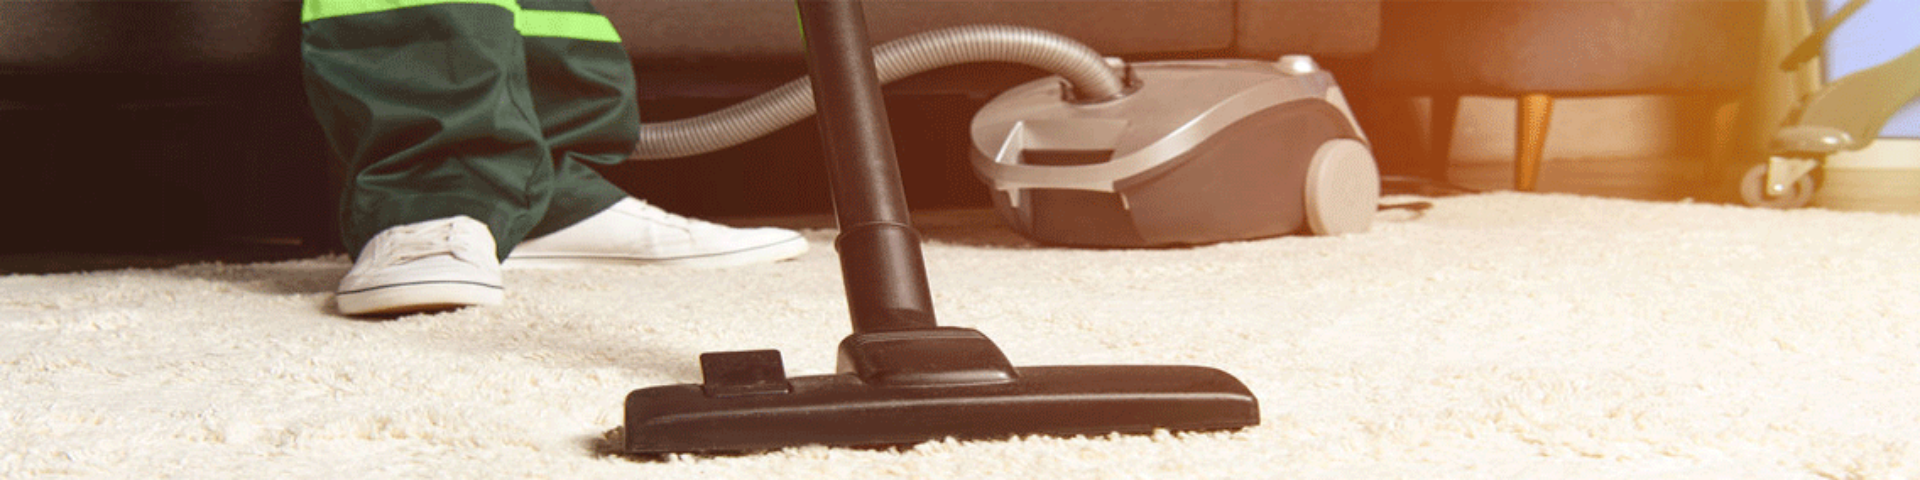 Home Carpet Cleaning Tips and Tricks